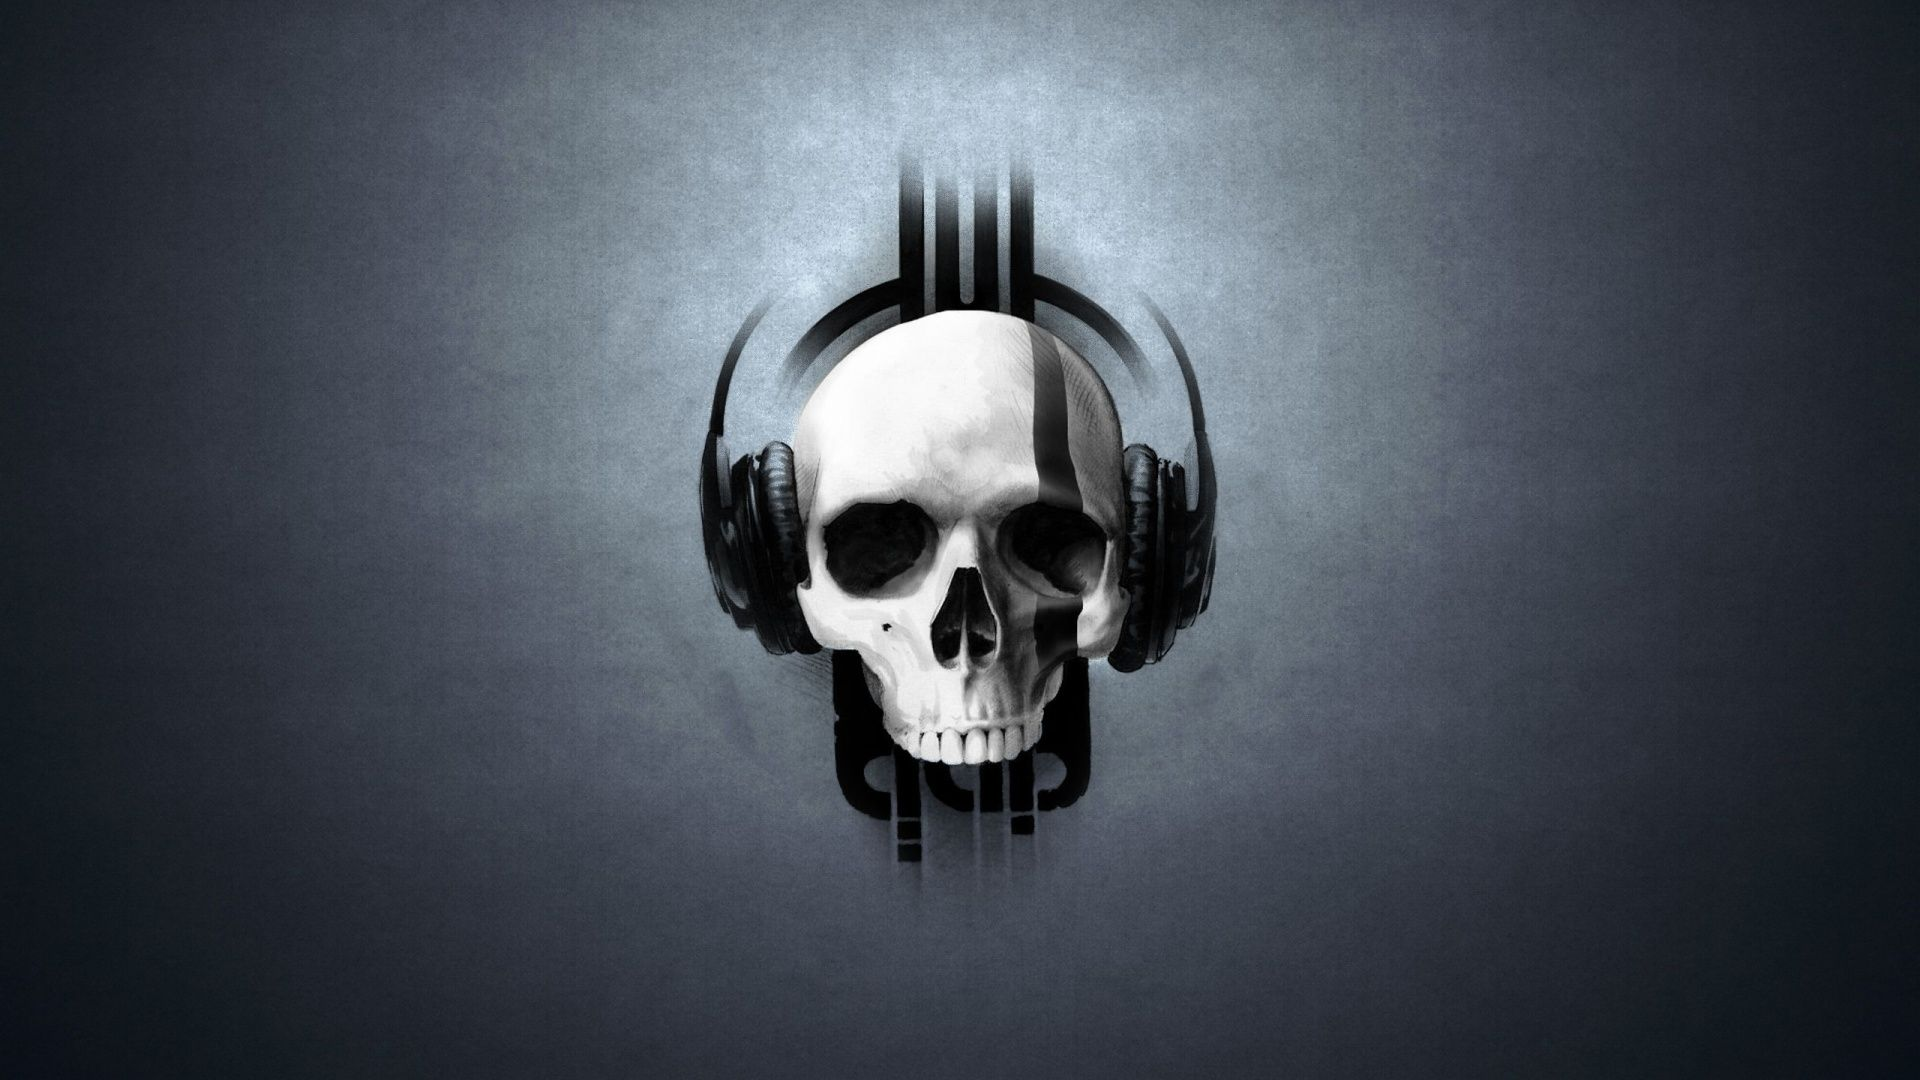 Skull Wallpapers Group  70   Cool Skull Wallpaper   Wallpapers  Backgrounds  Images  Art Photos